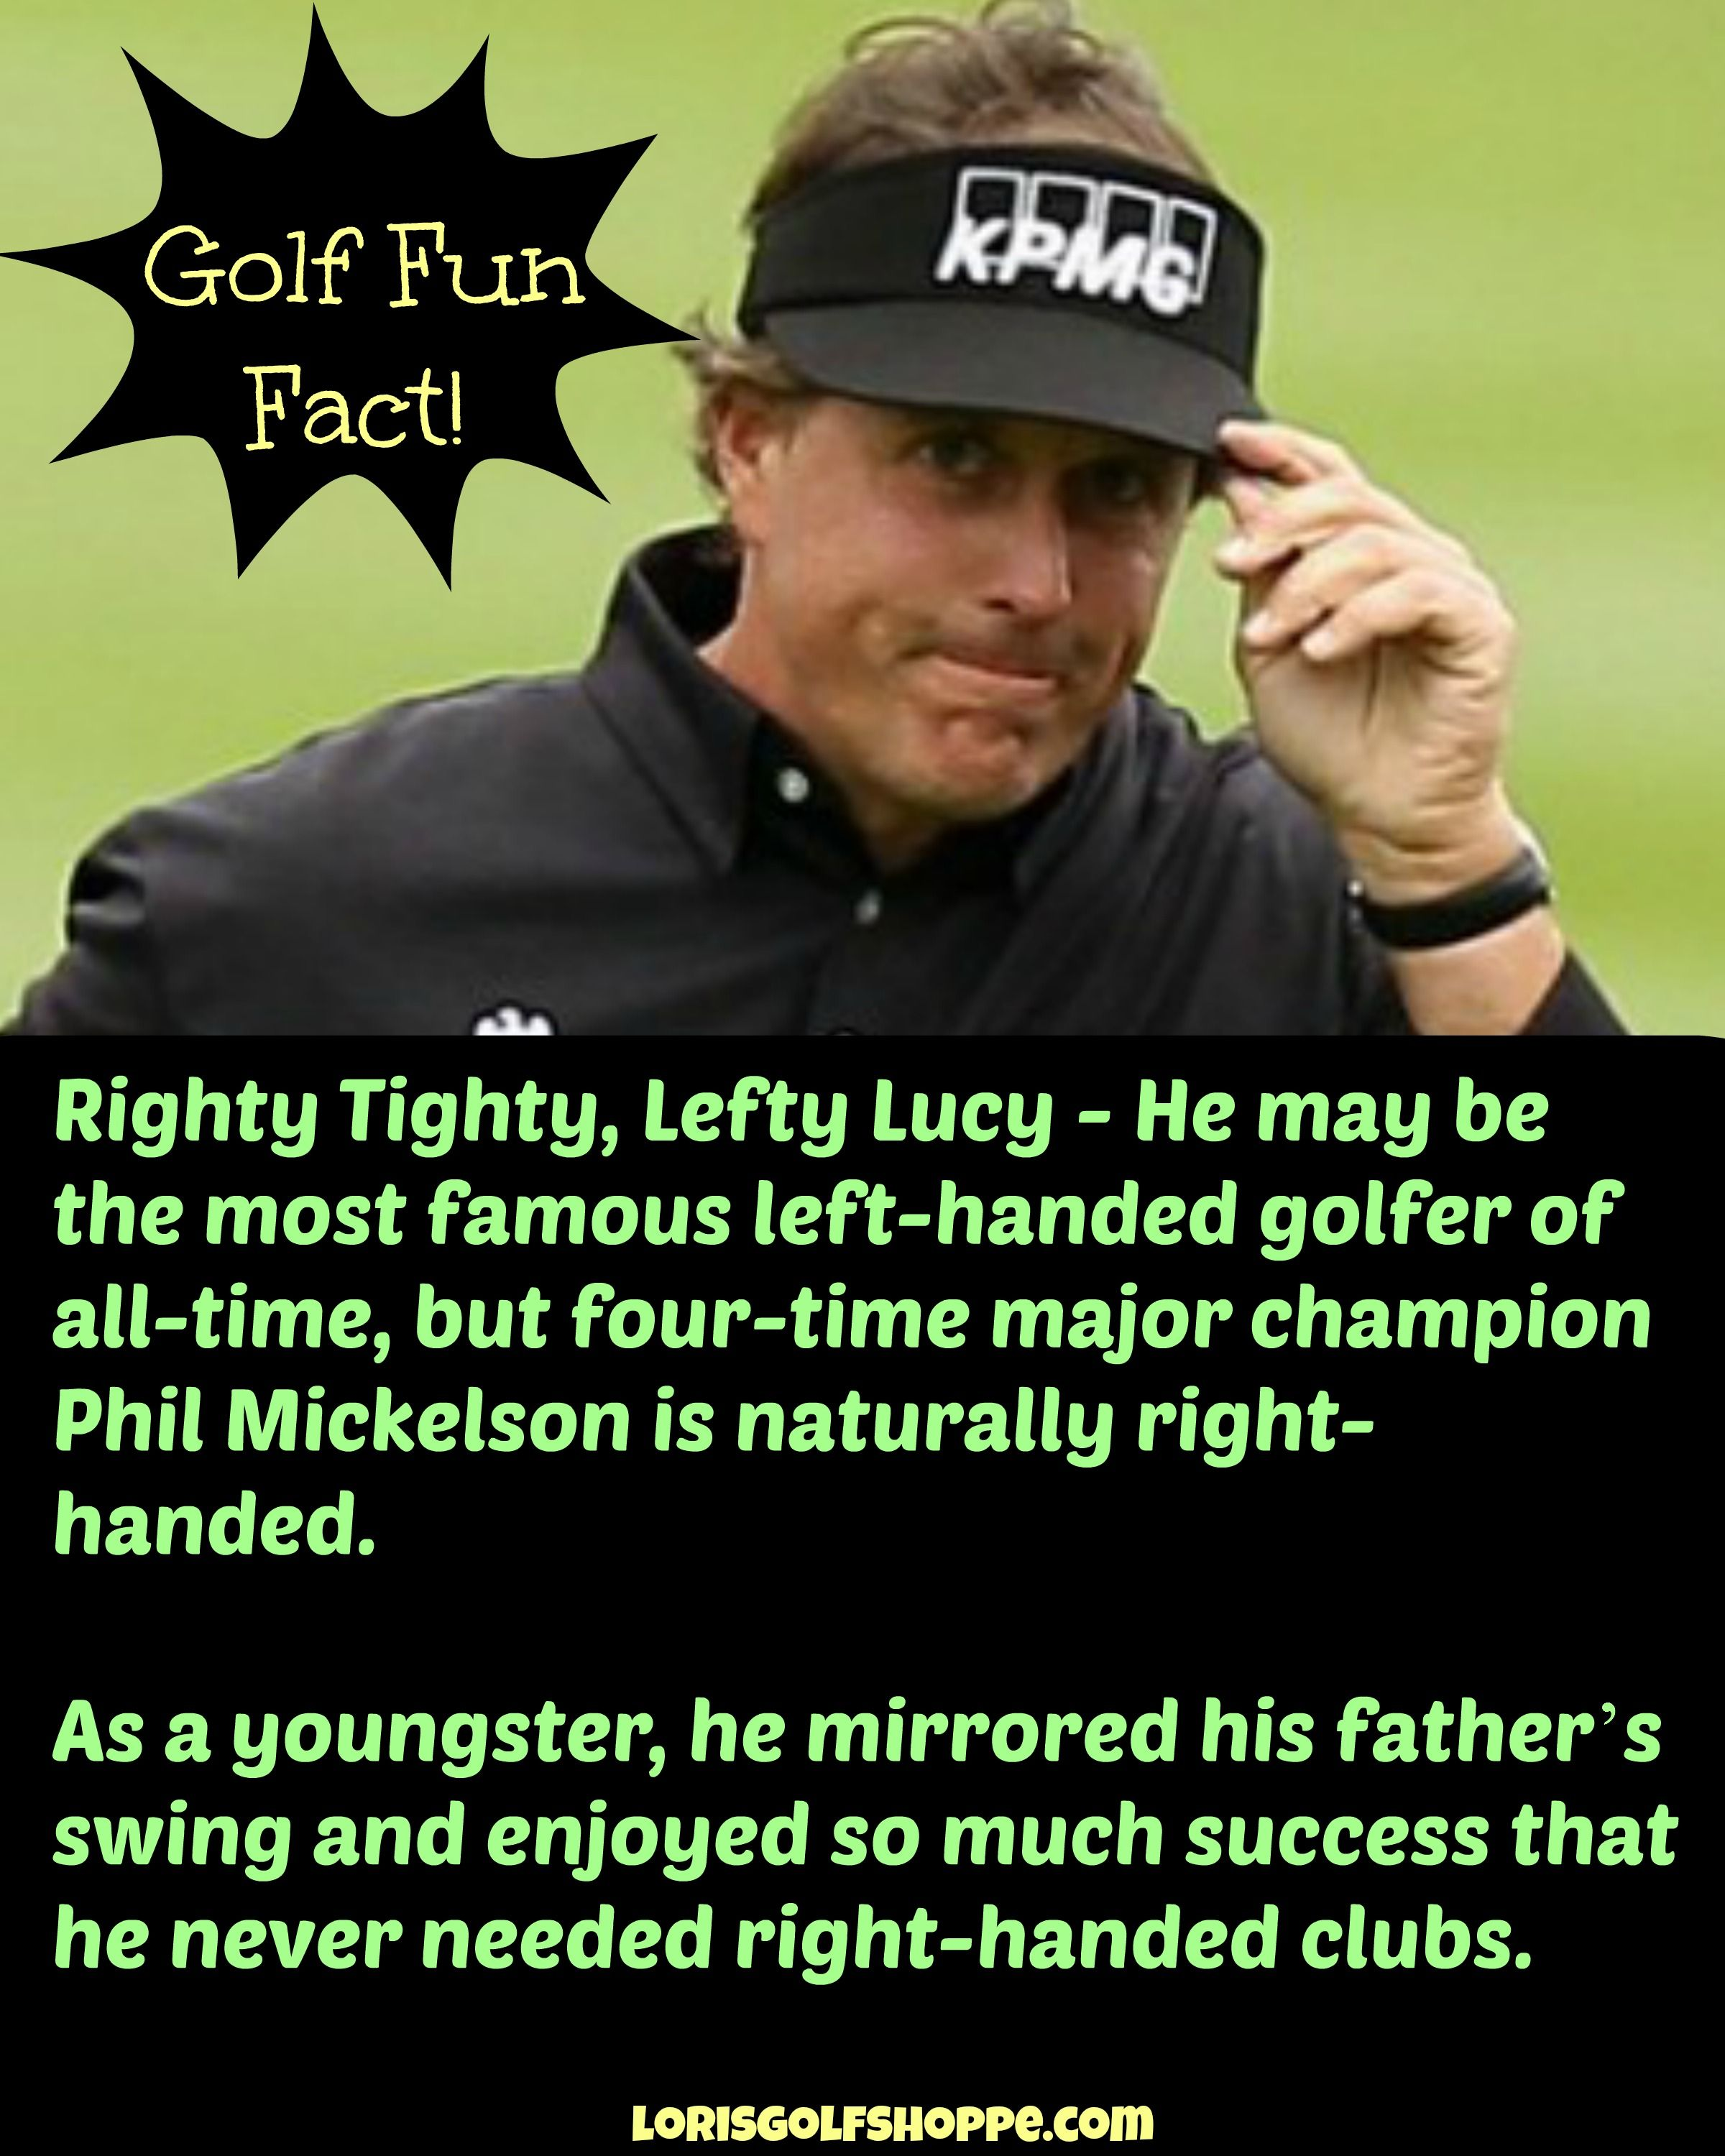 Did you know about this? #golf #PhilMickelson #lorisgolfshoppe